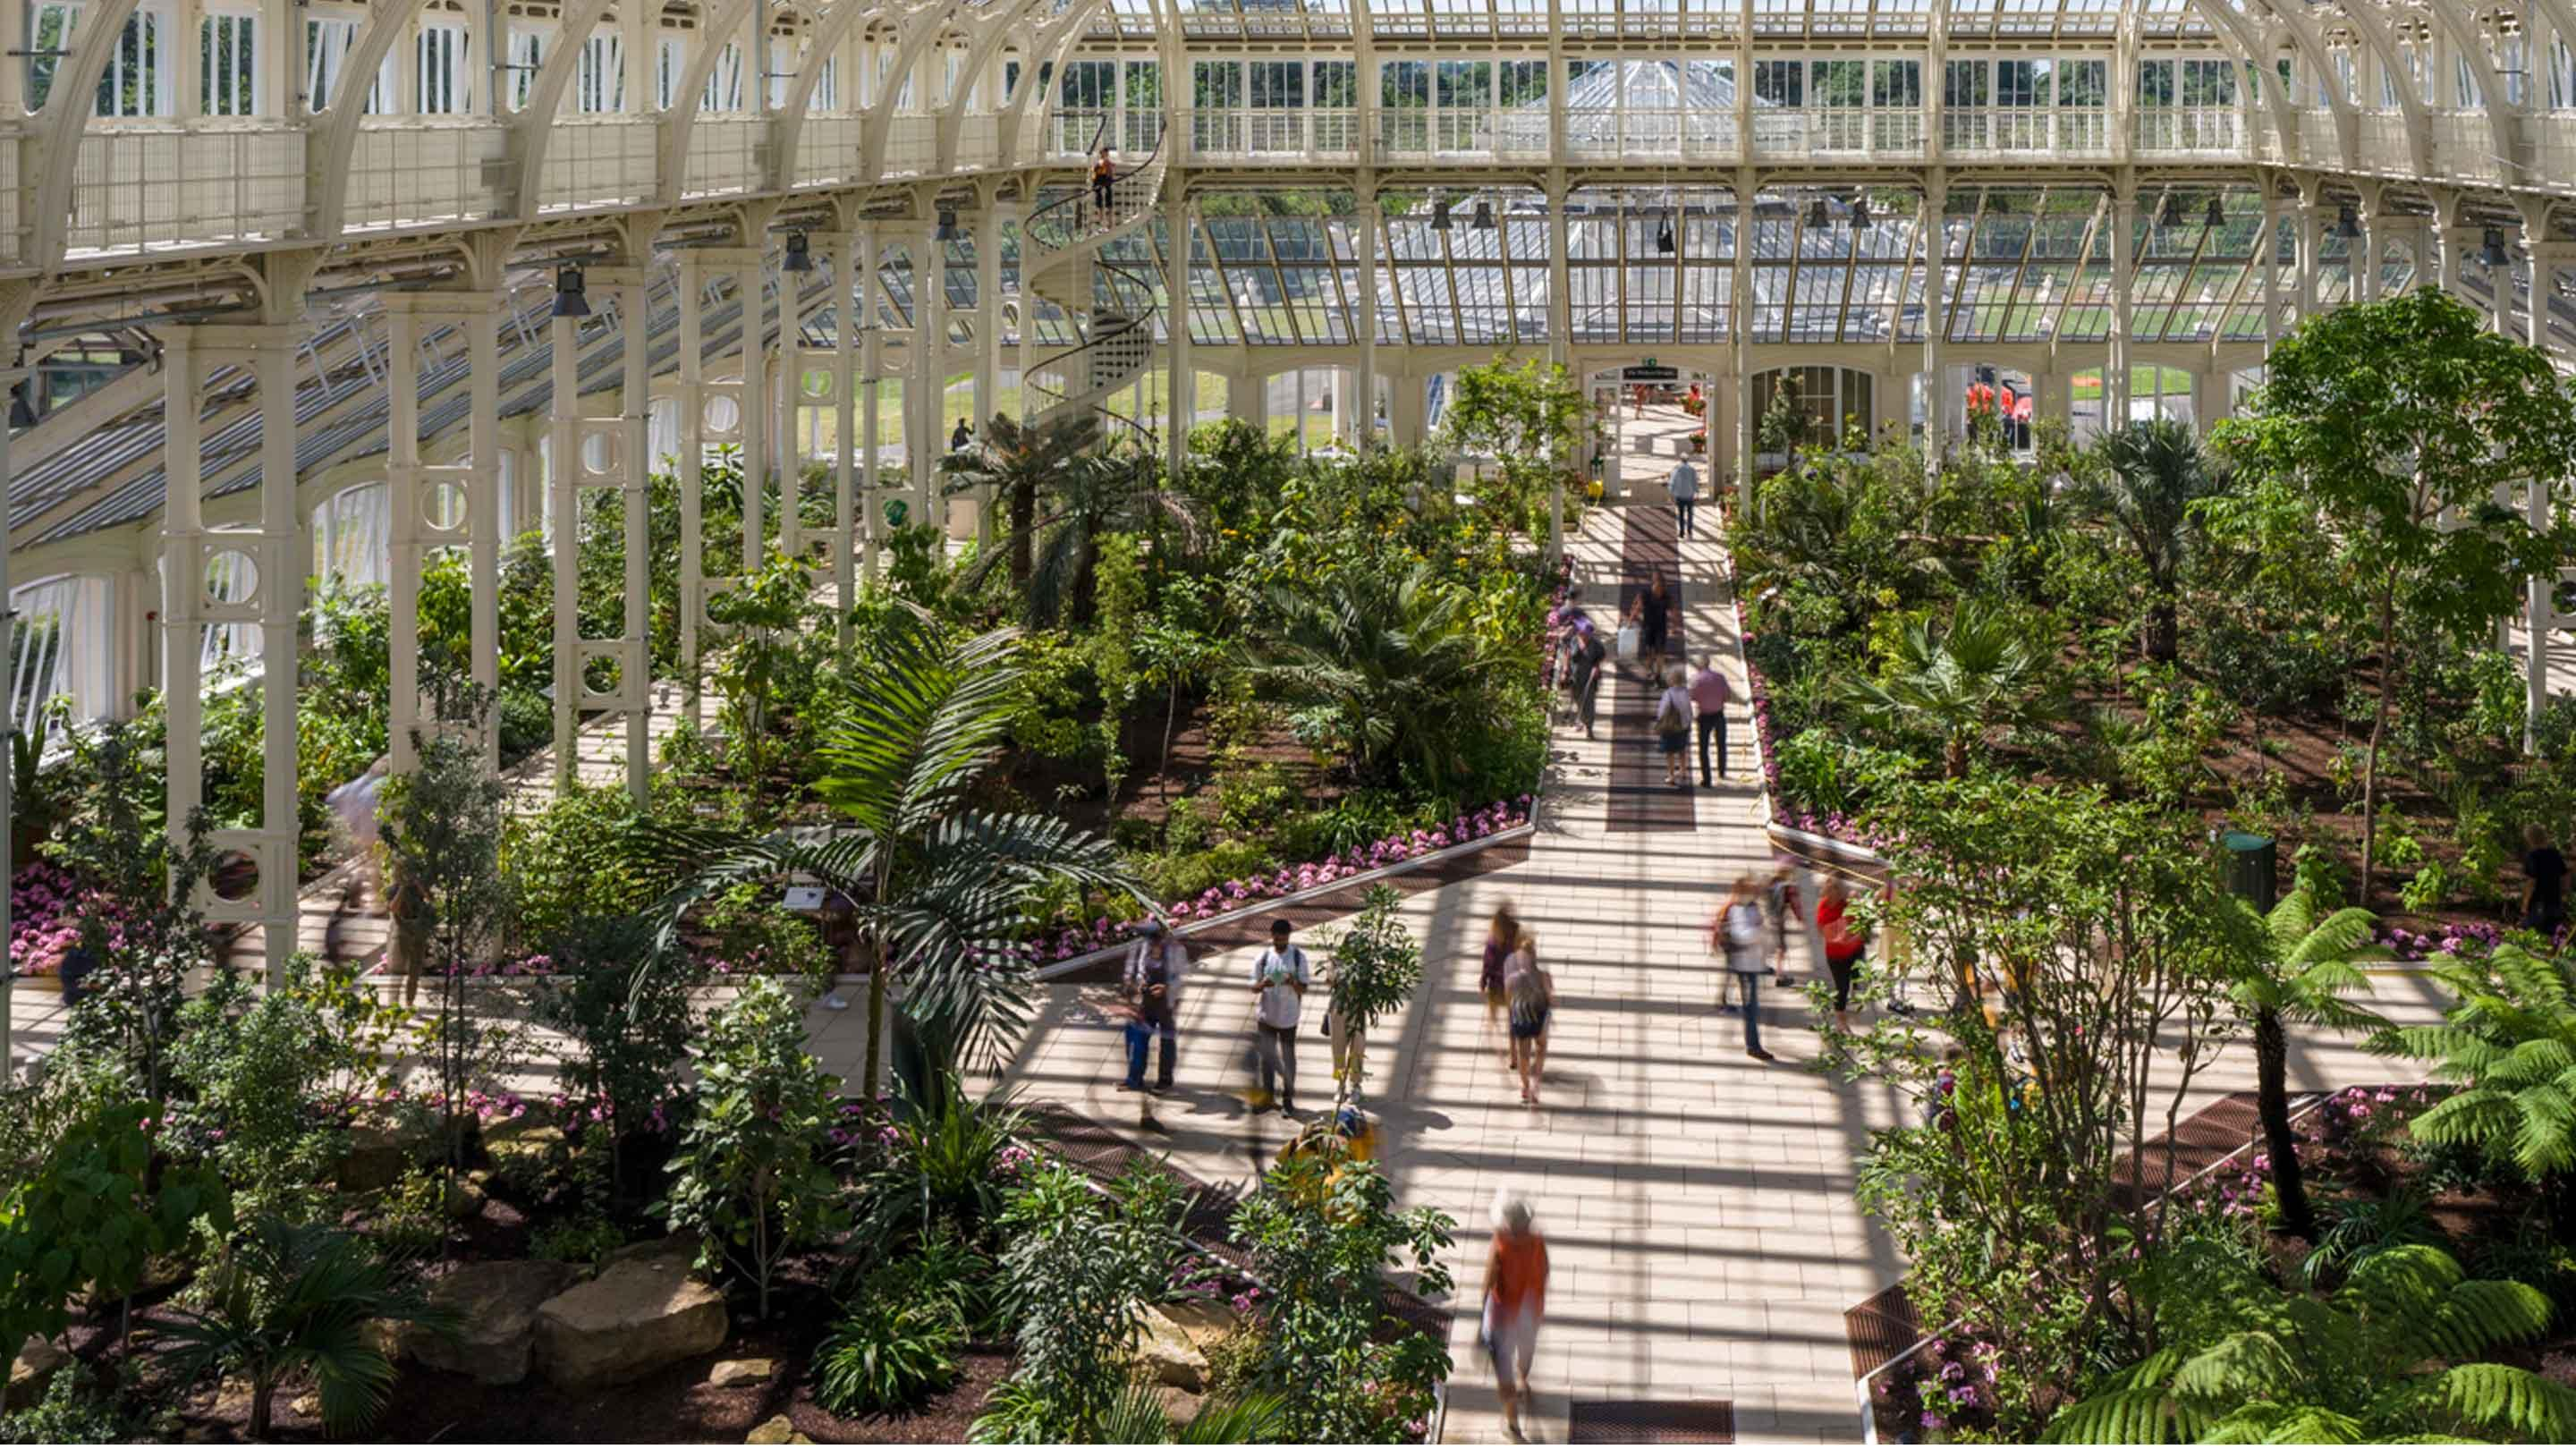 A view of the Temperate House